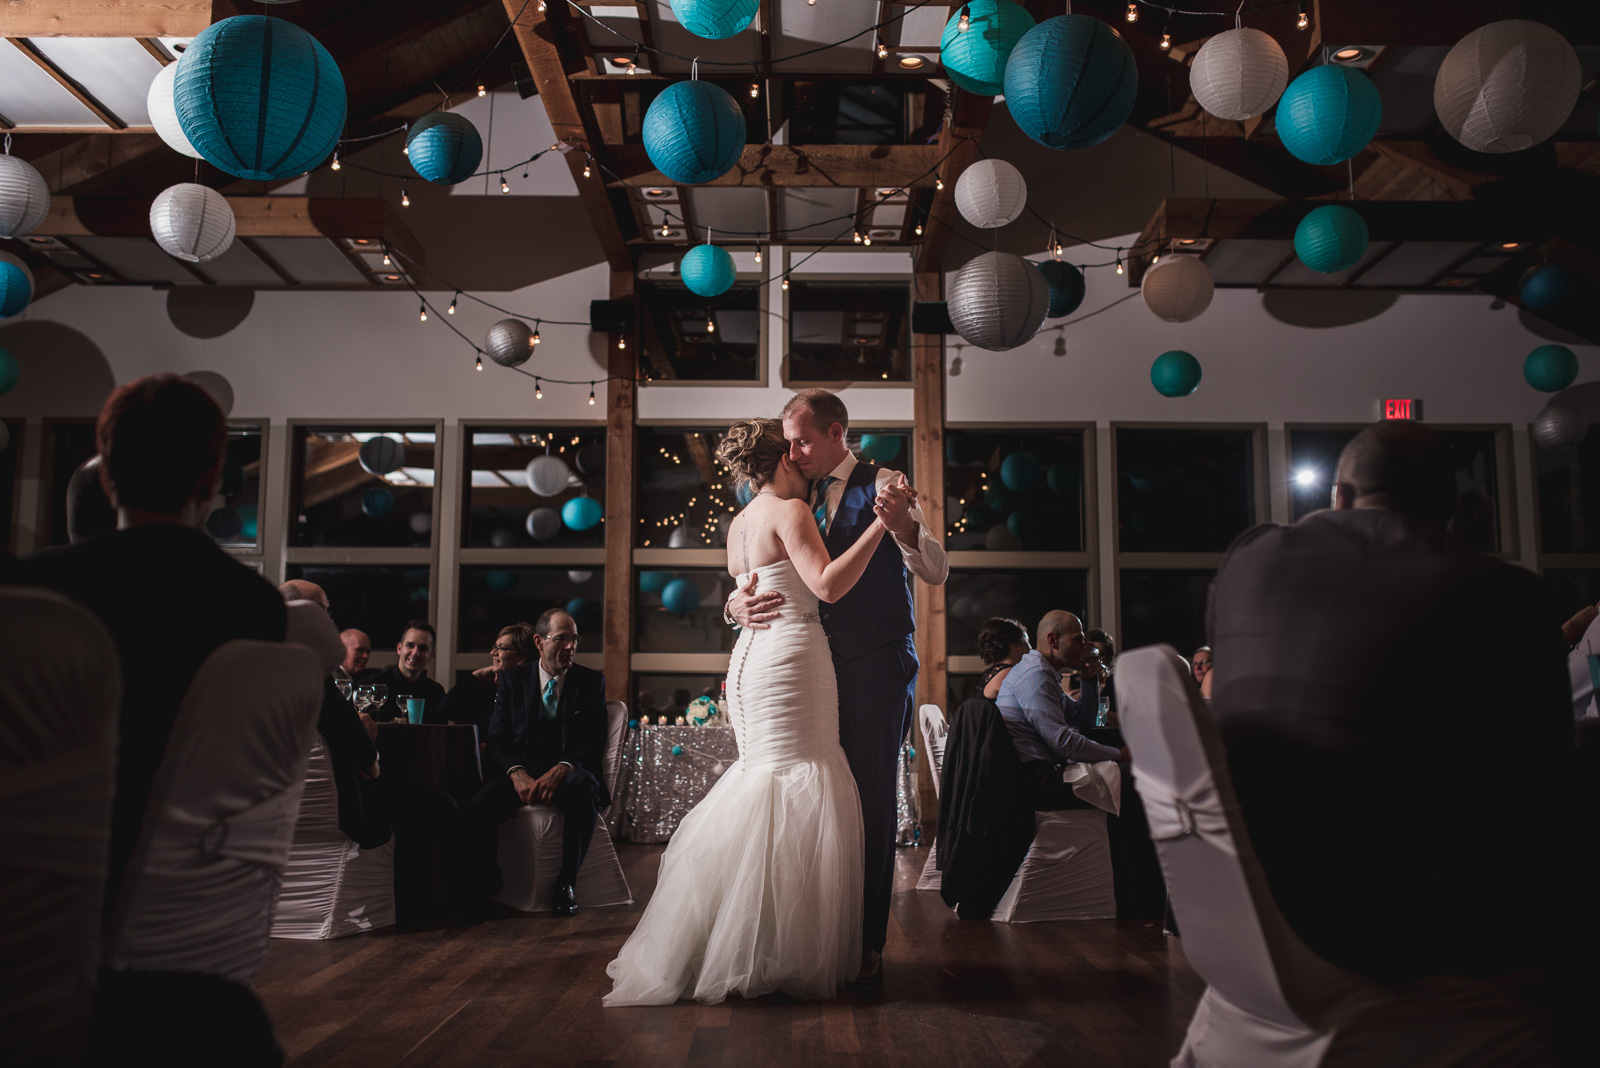 bride and groom first dance at their reception at Whonnock Lake Centre in Maple Ridge - Victoria Wedding Photographers